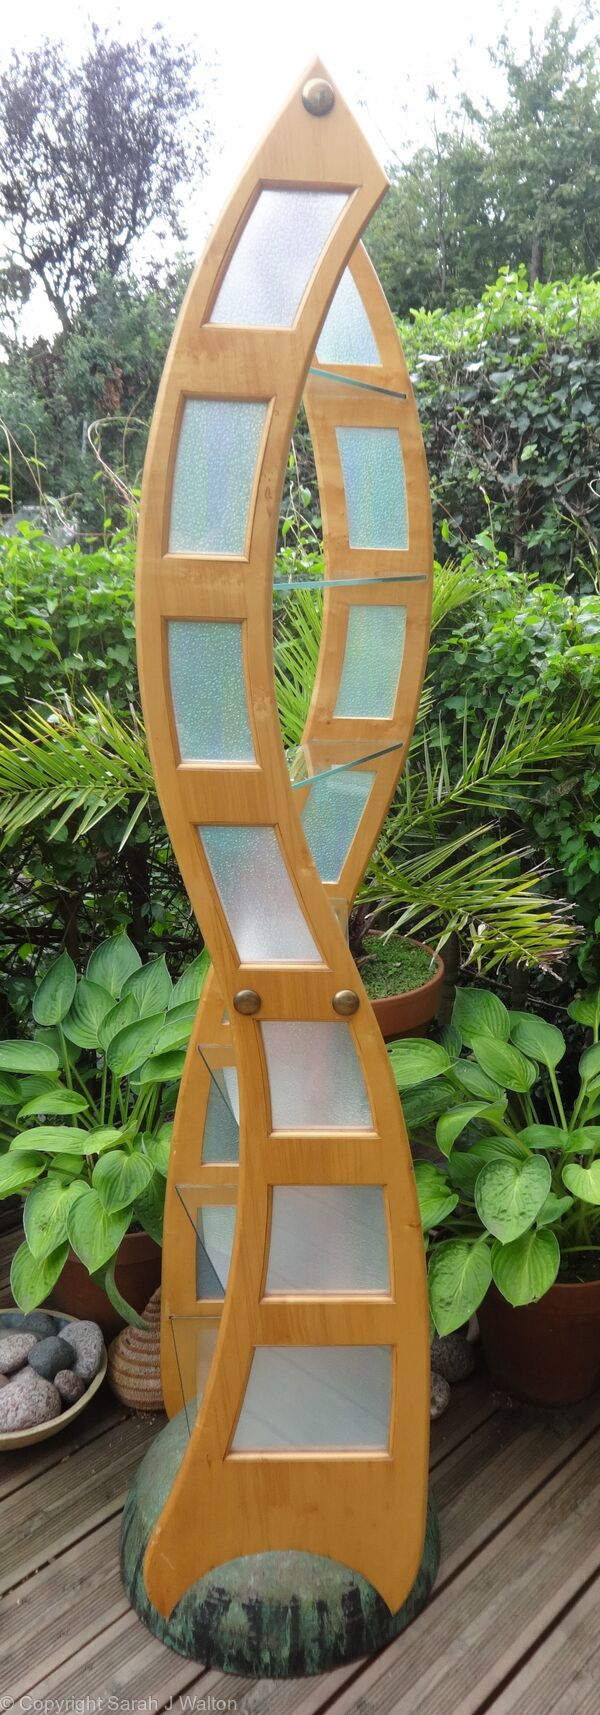 Sycamore & glass display stand